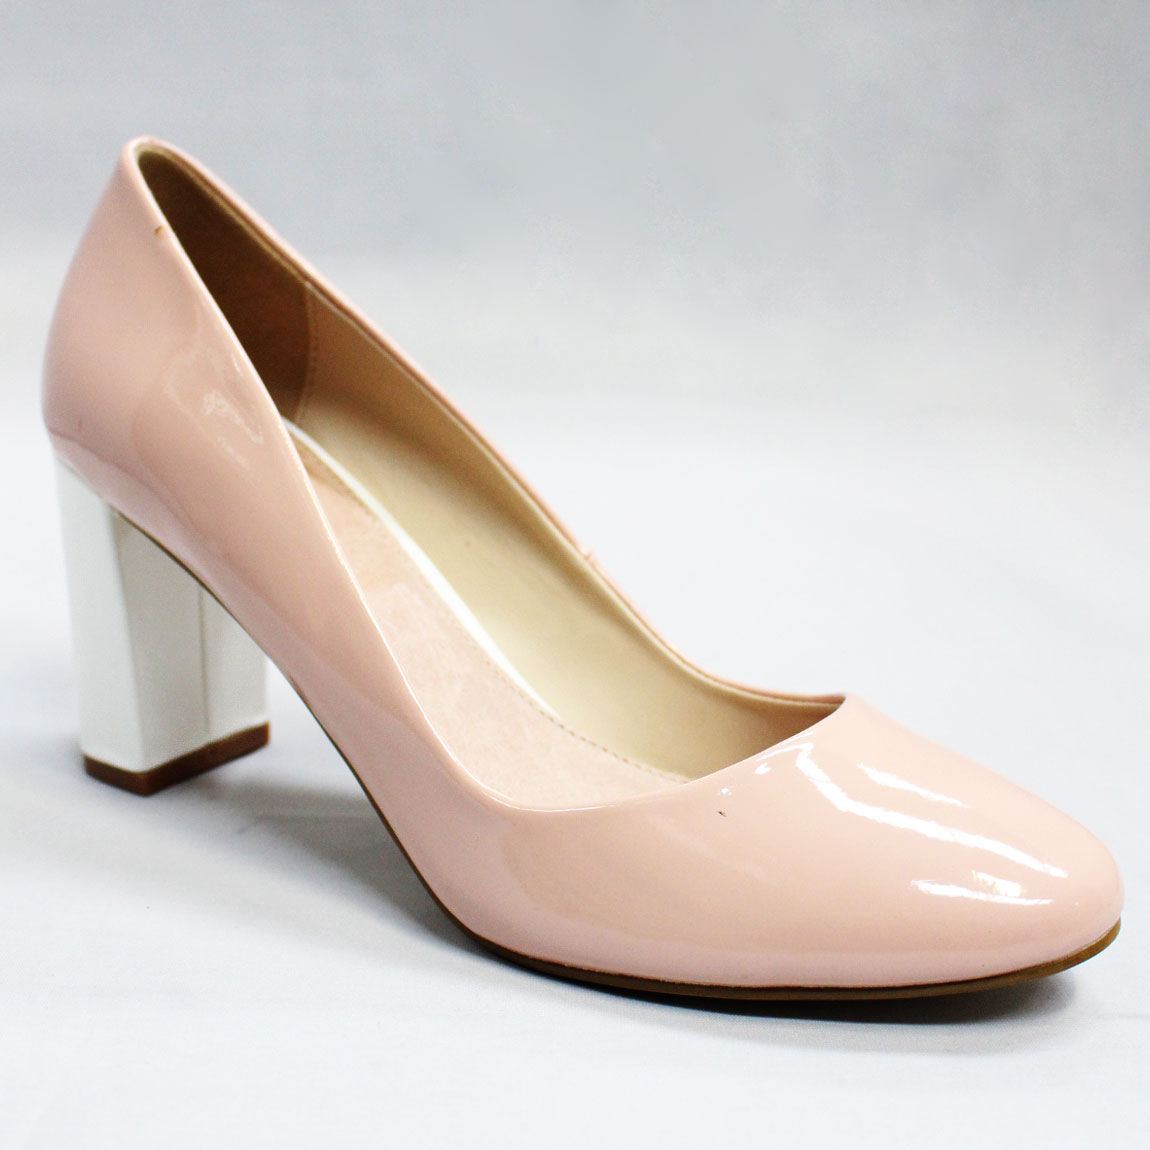 Details about J By Jasper Conran Julie Womens Light Pink Mid Block Heel Court  Shoes UK 5 18cd7df5f